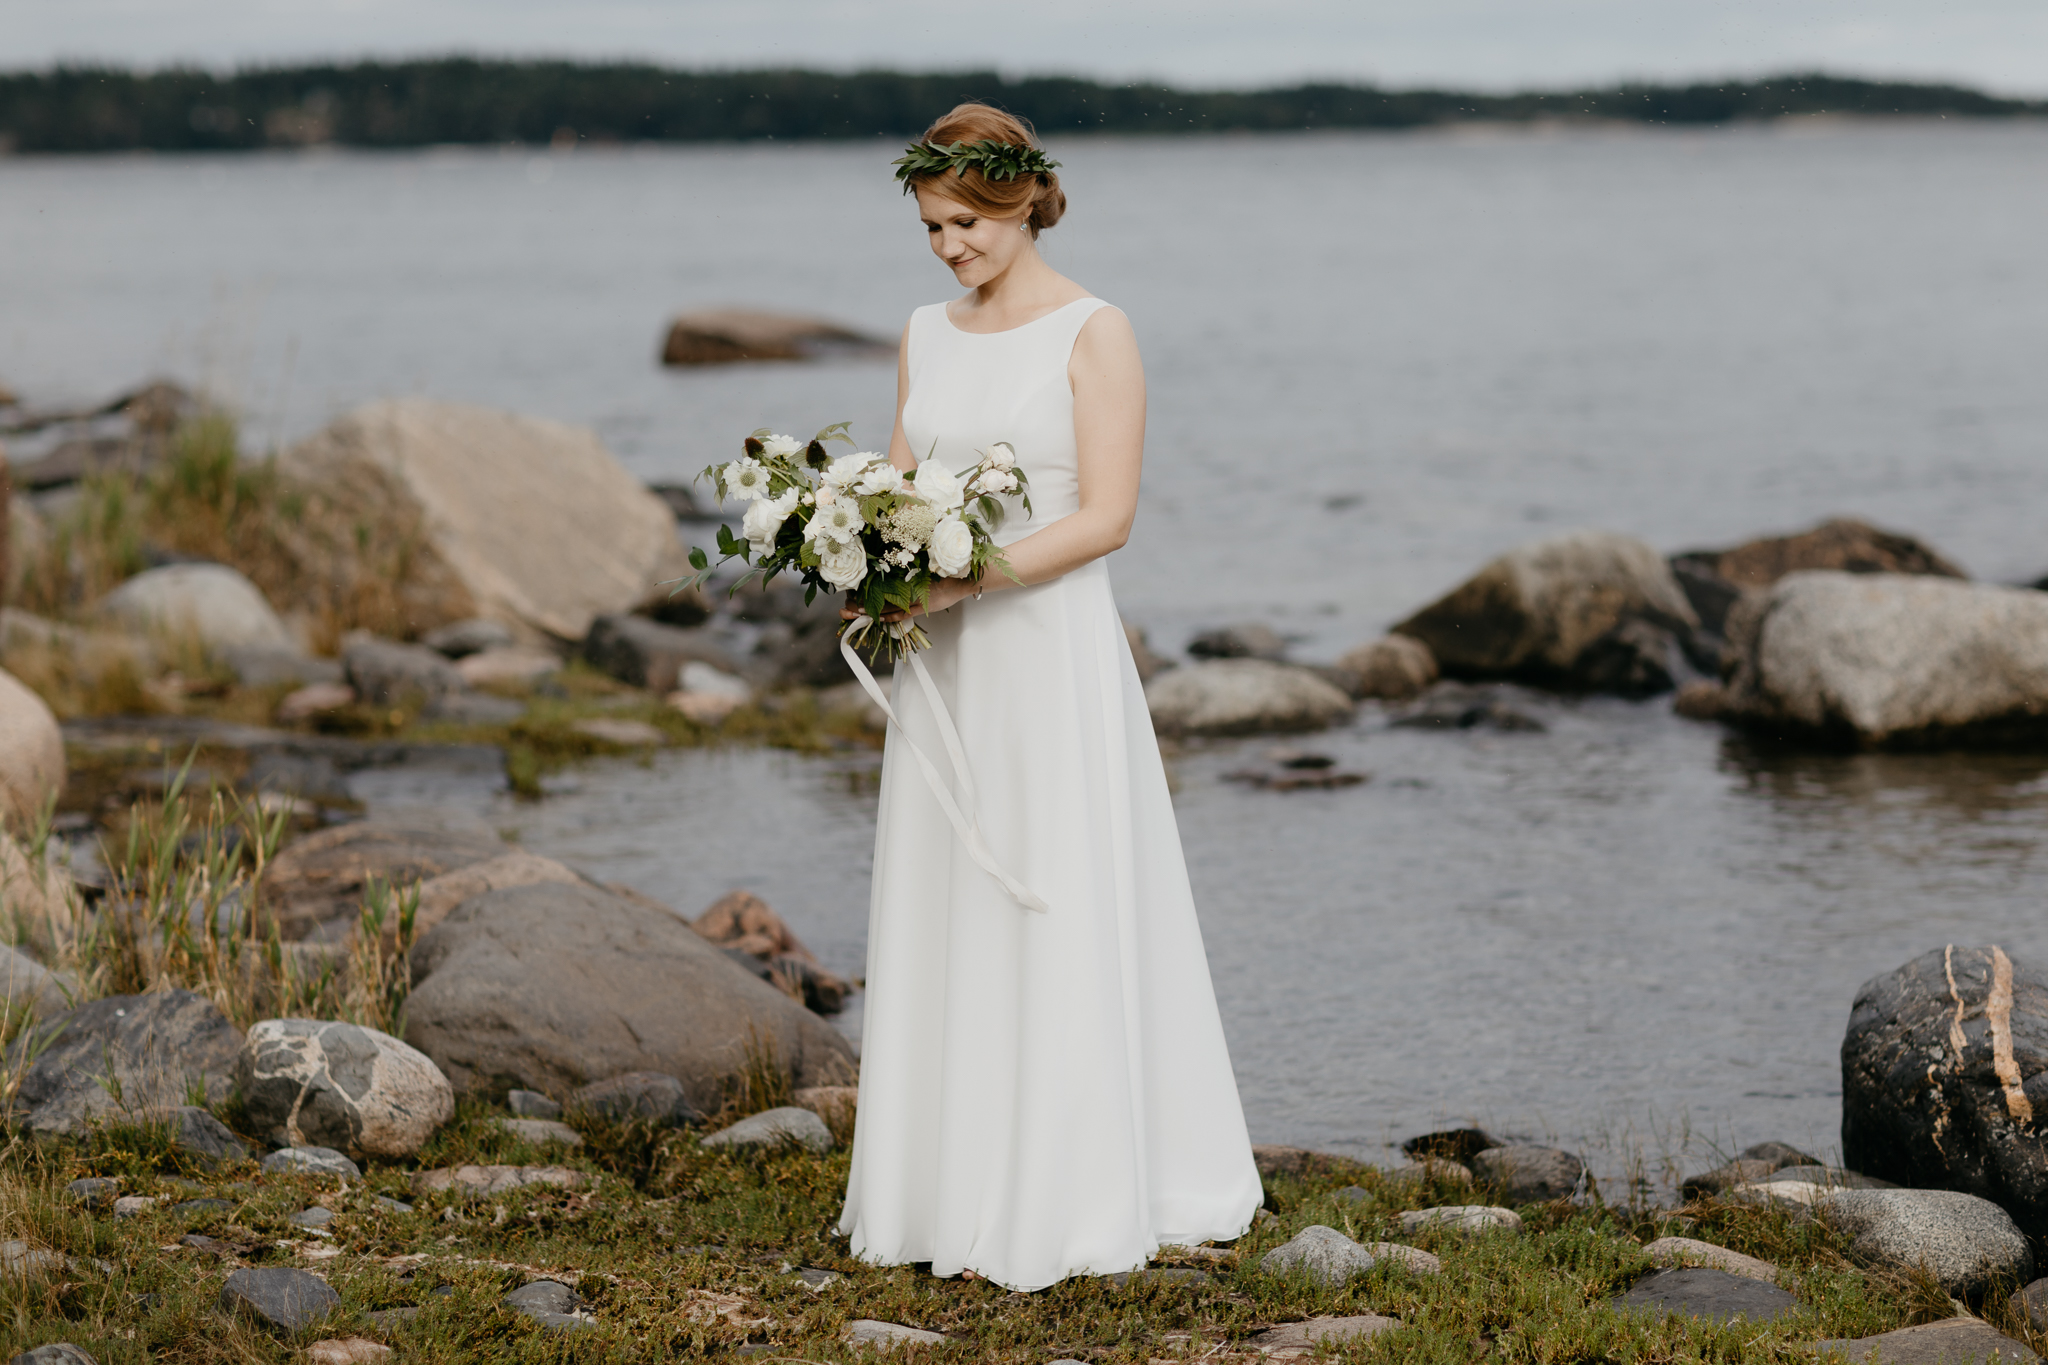 Vilhelmiina + Mark | Photo by Patrick Karkkolainen Wedding Photographer | Helsinki Wedding Photographer-158.jpg